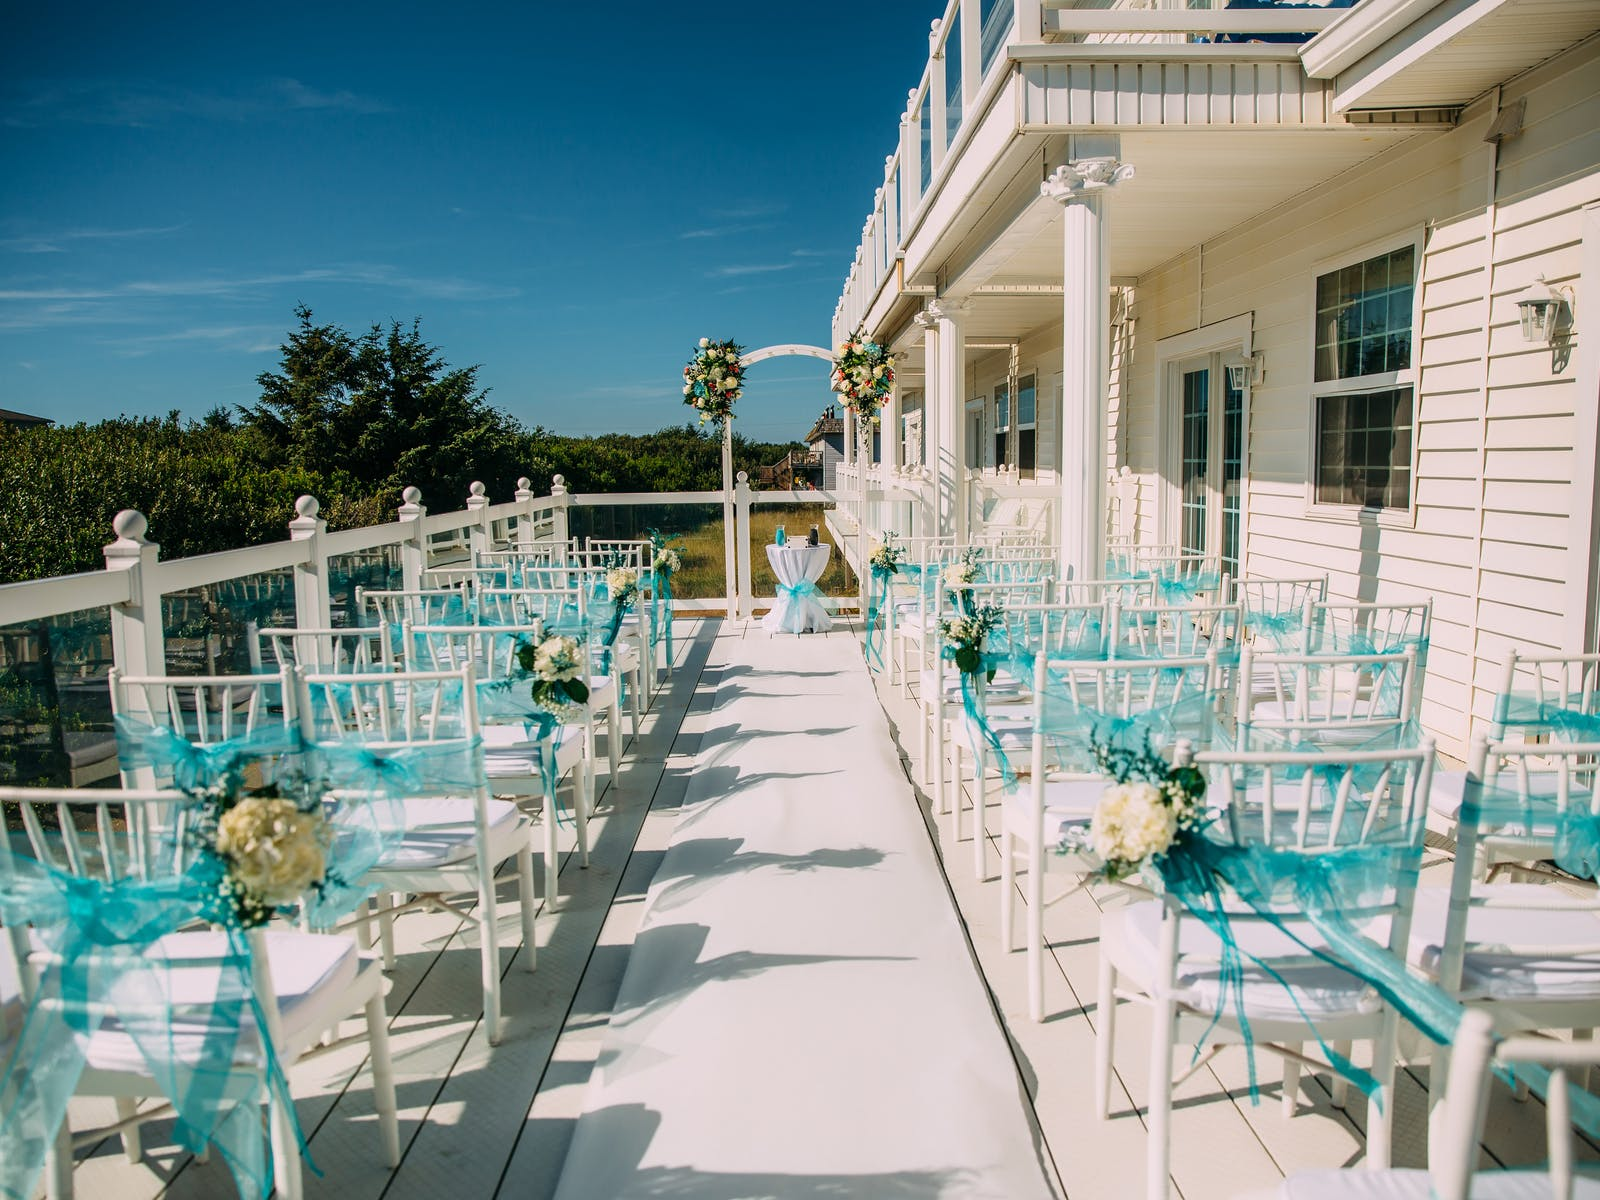 Seating for wedding ceremony set up at Judith Ann Inn in Ocean Shores, WA